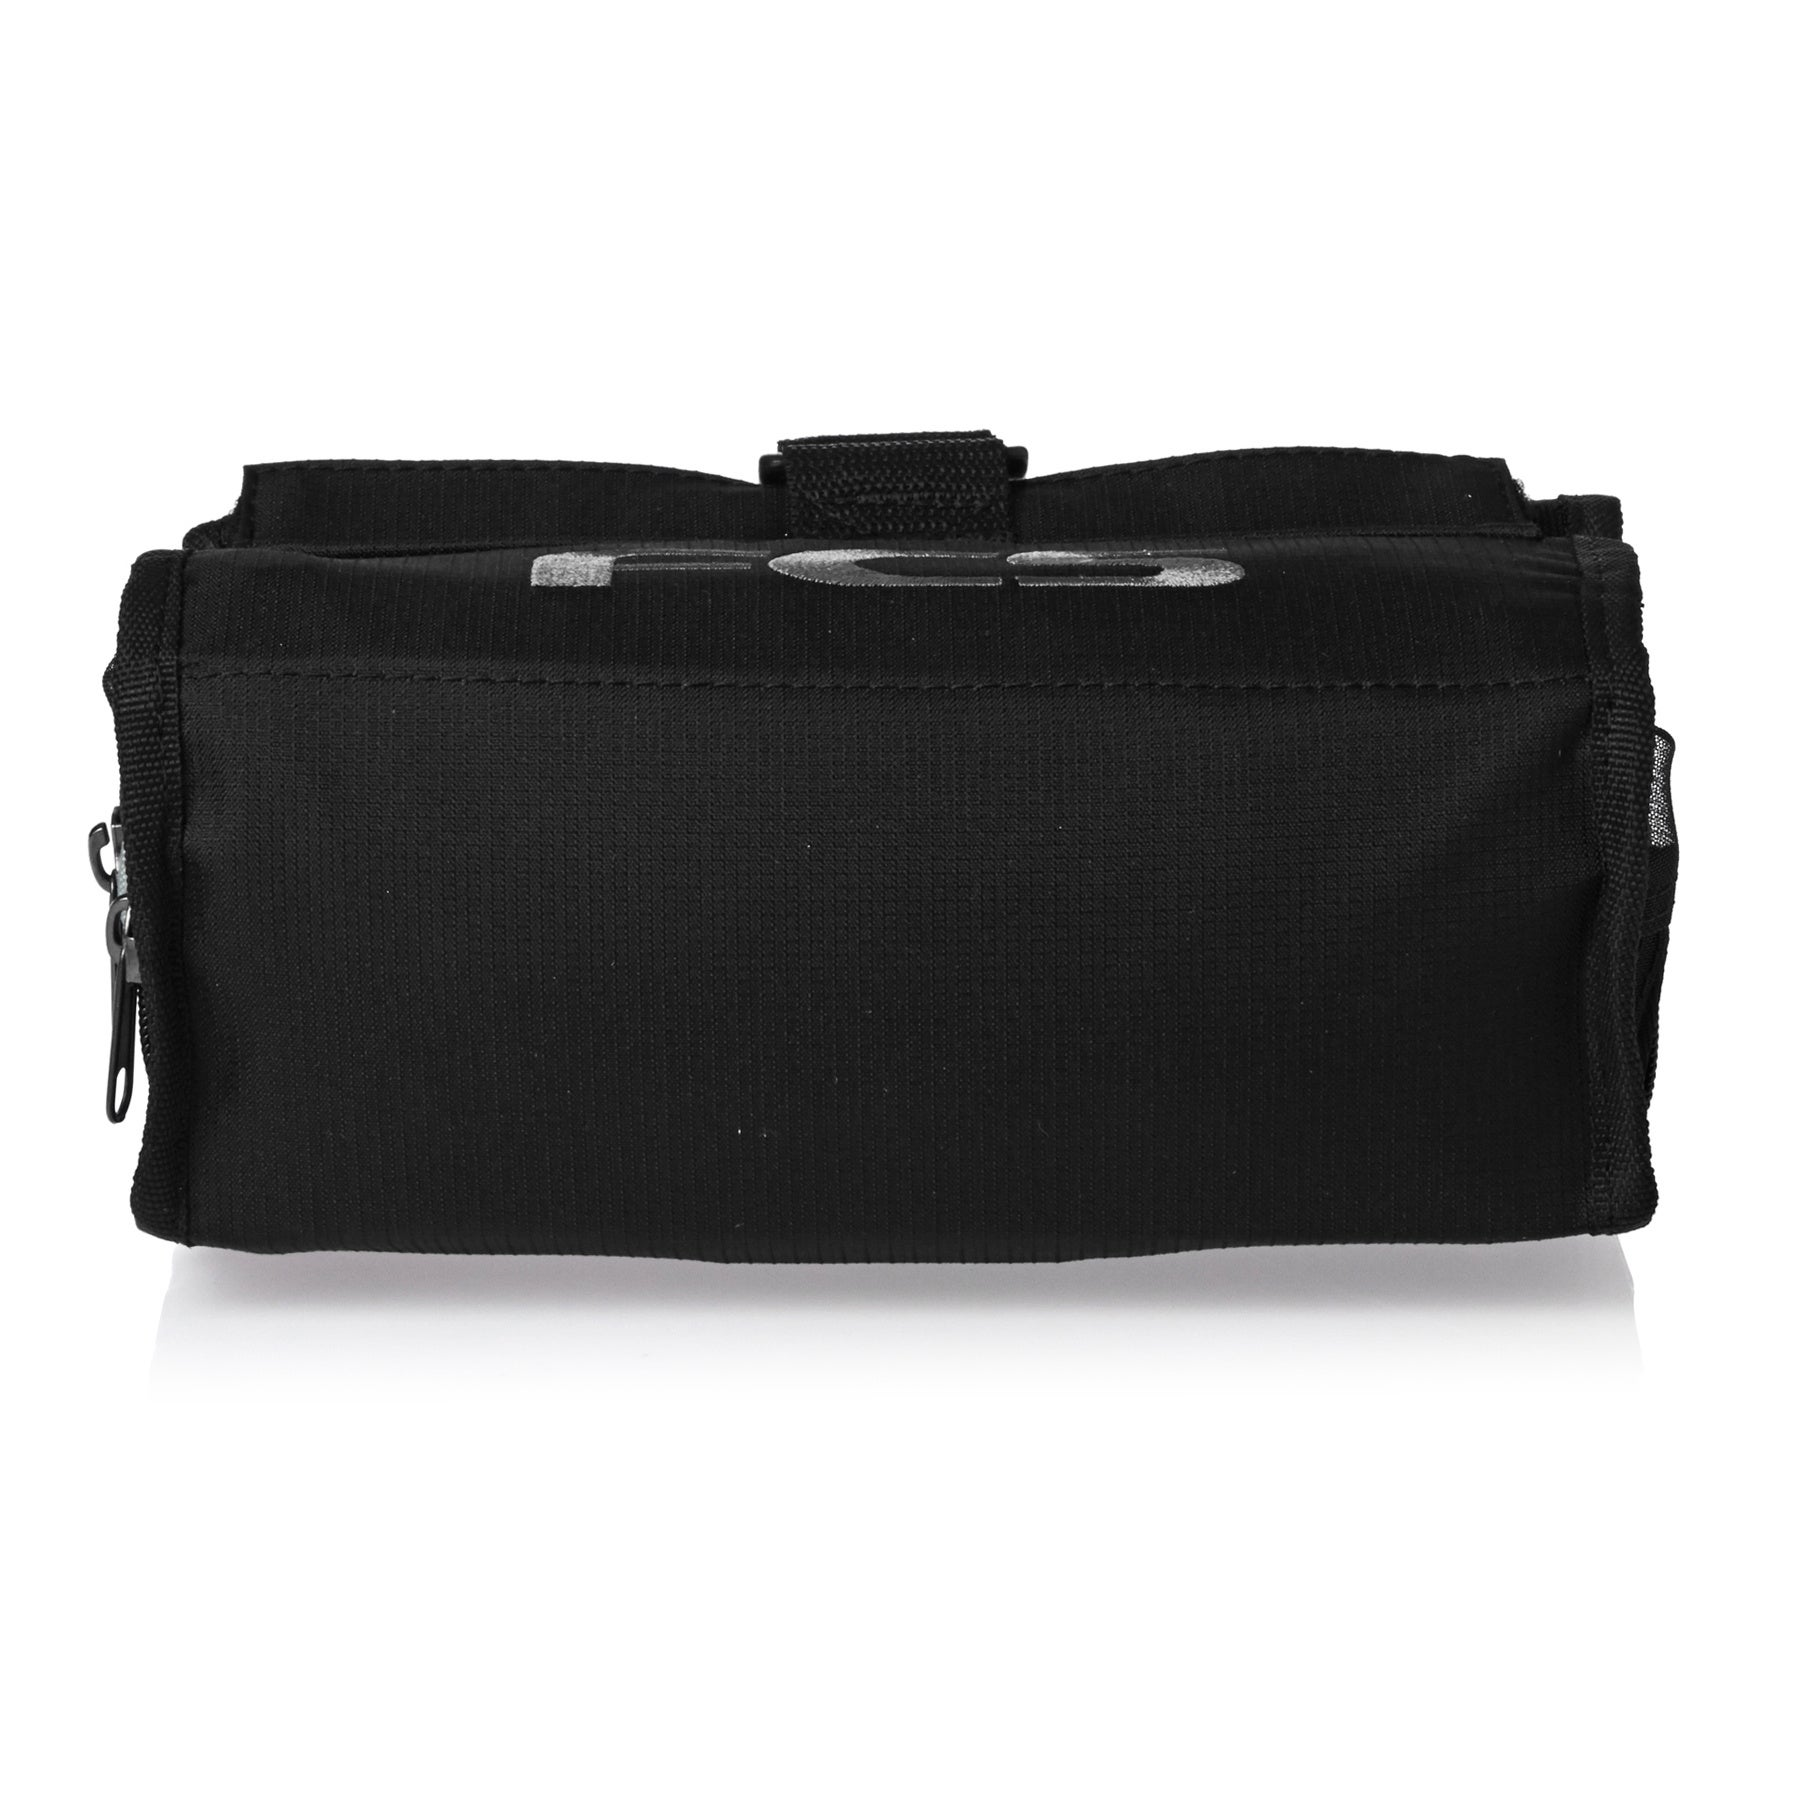 Bolsa de aseo FCS Accessory Pack - Black